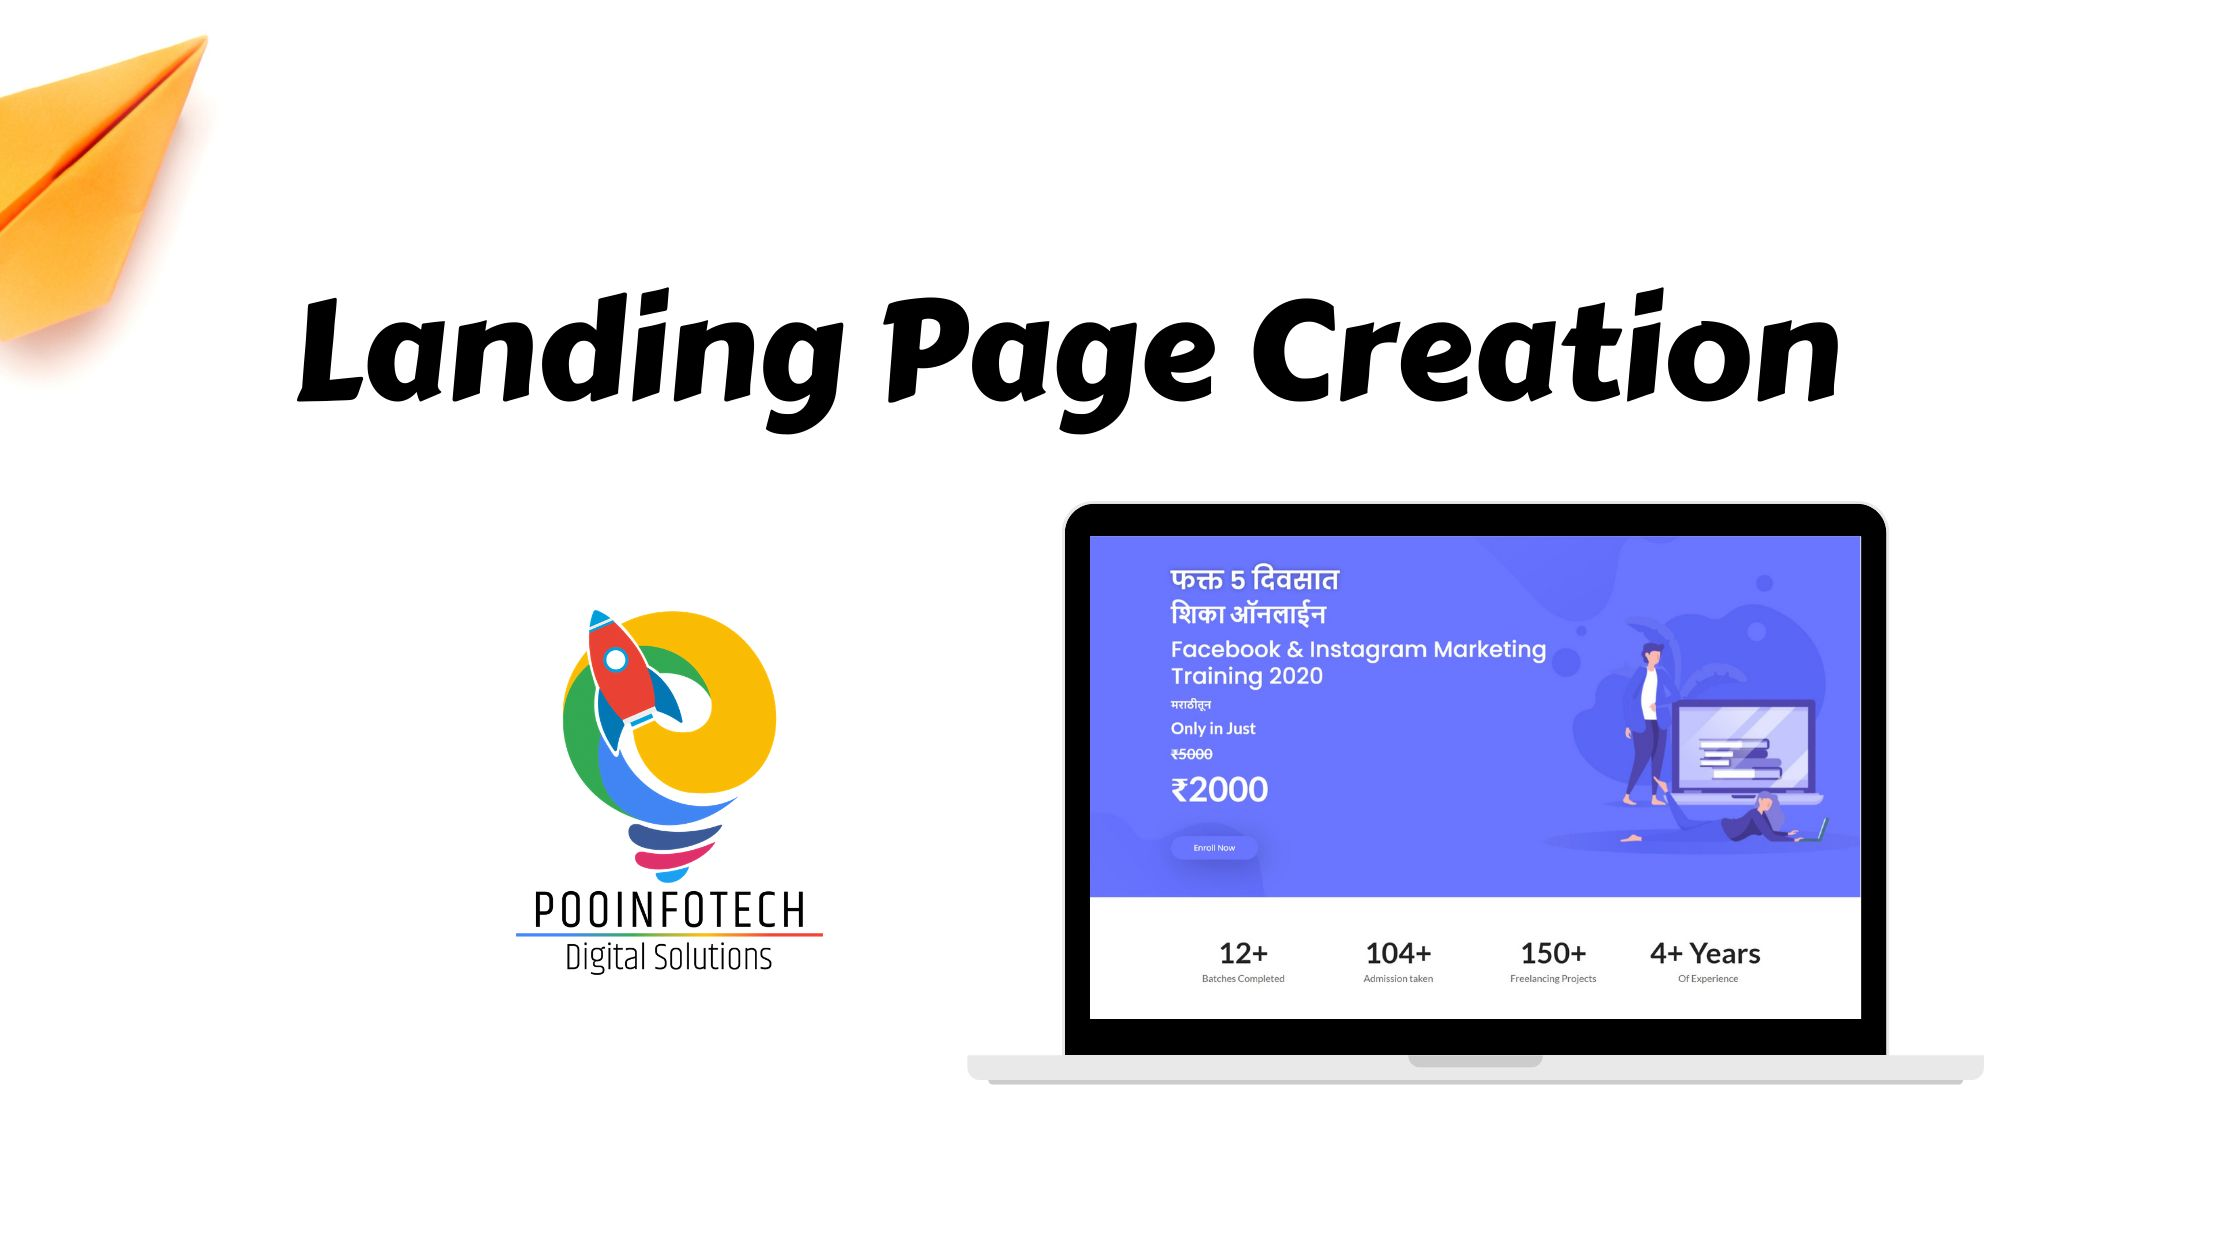 Pooinfotech online class landing page